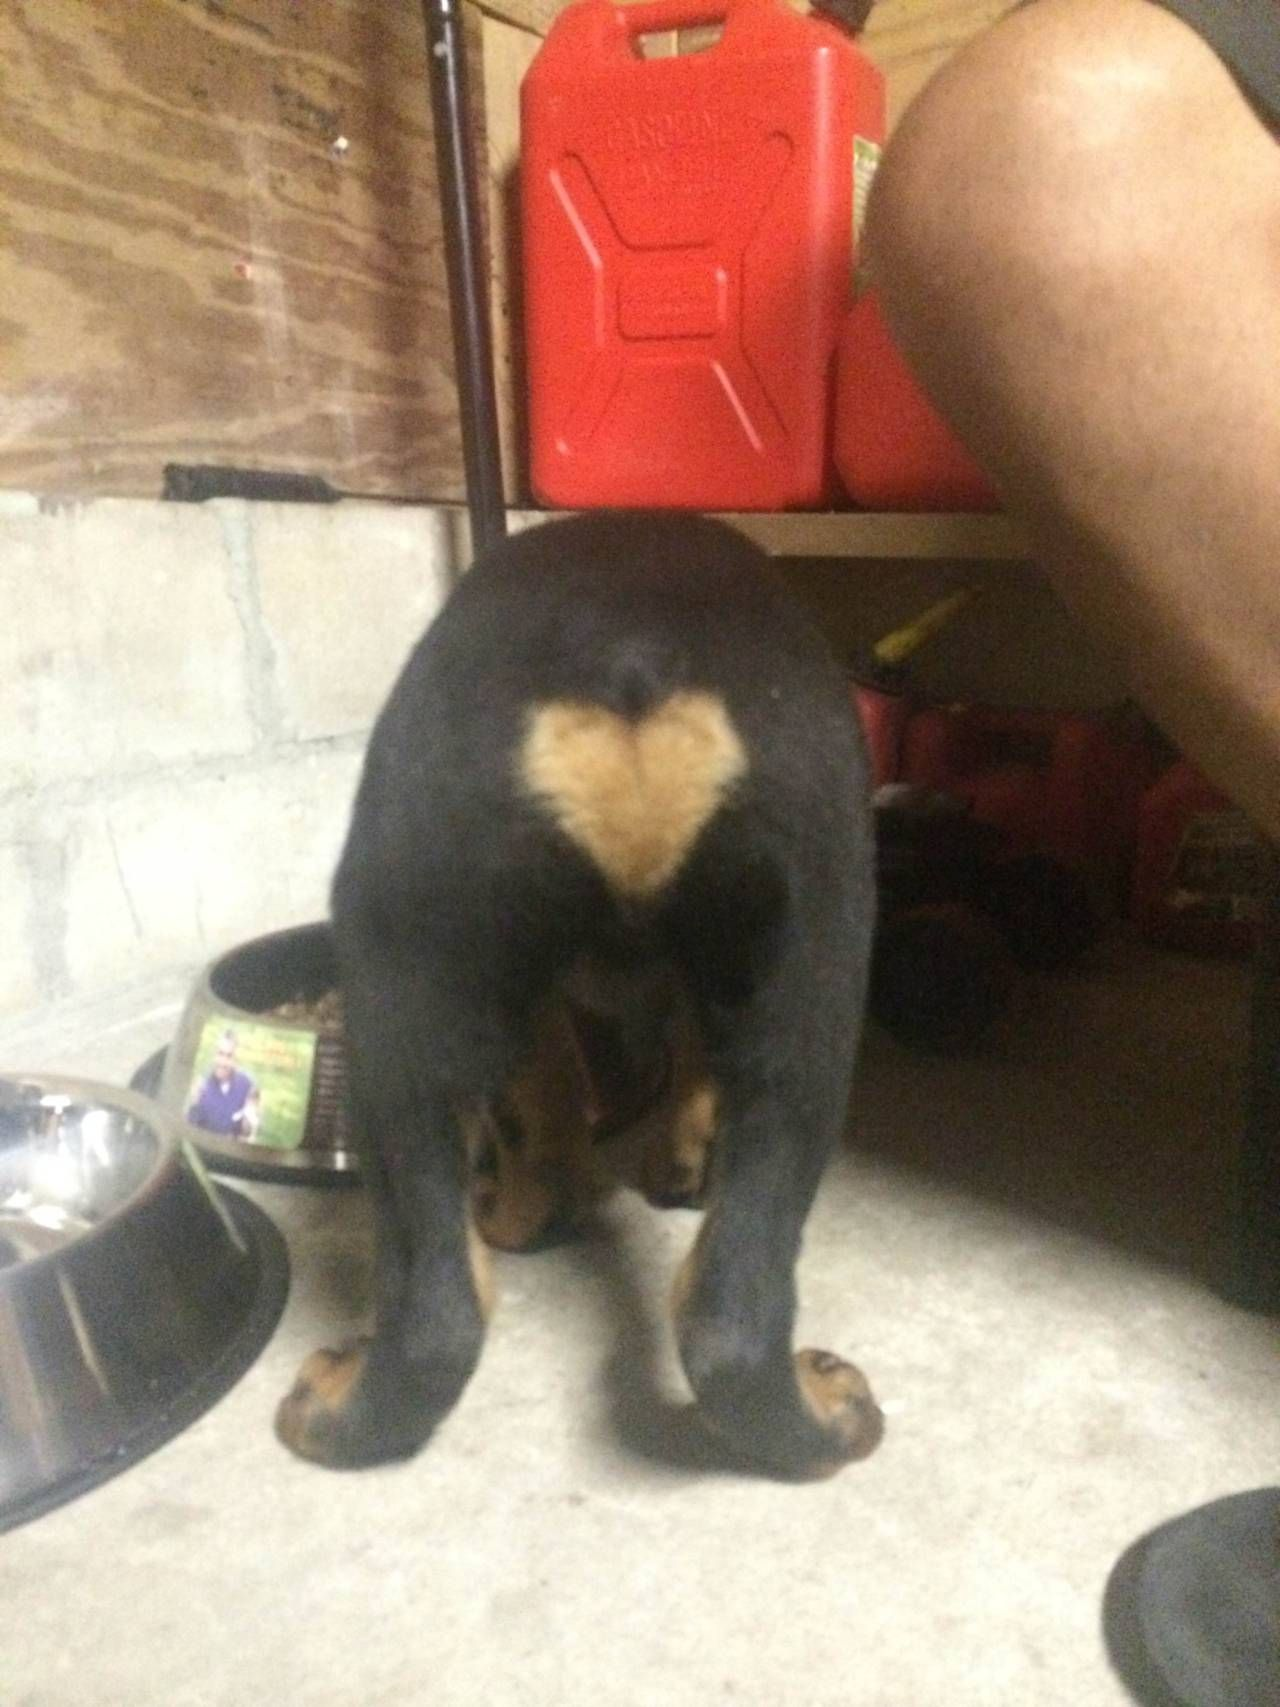 My Friends Rottweiler Puppy Has A Perfect Heart On His Rump